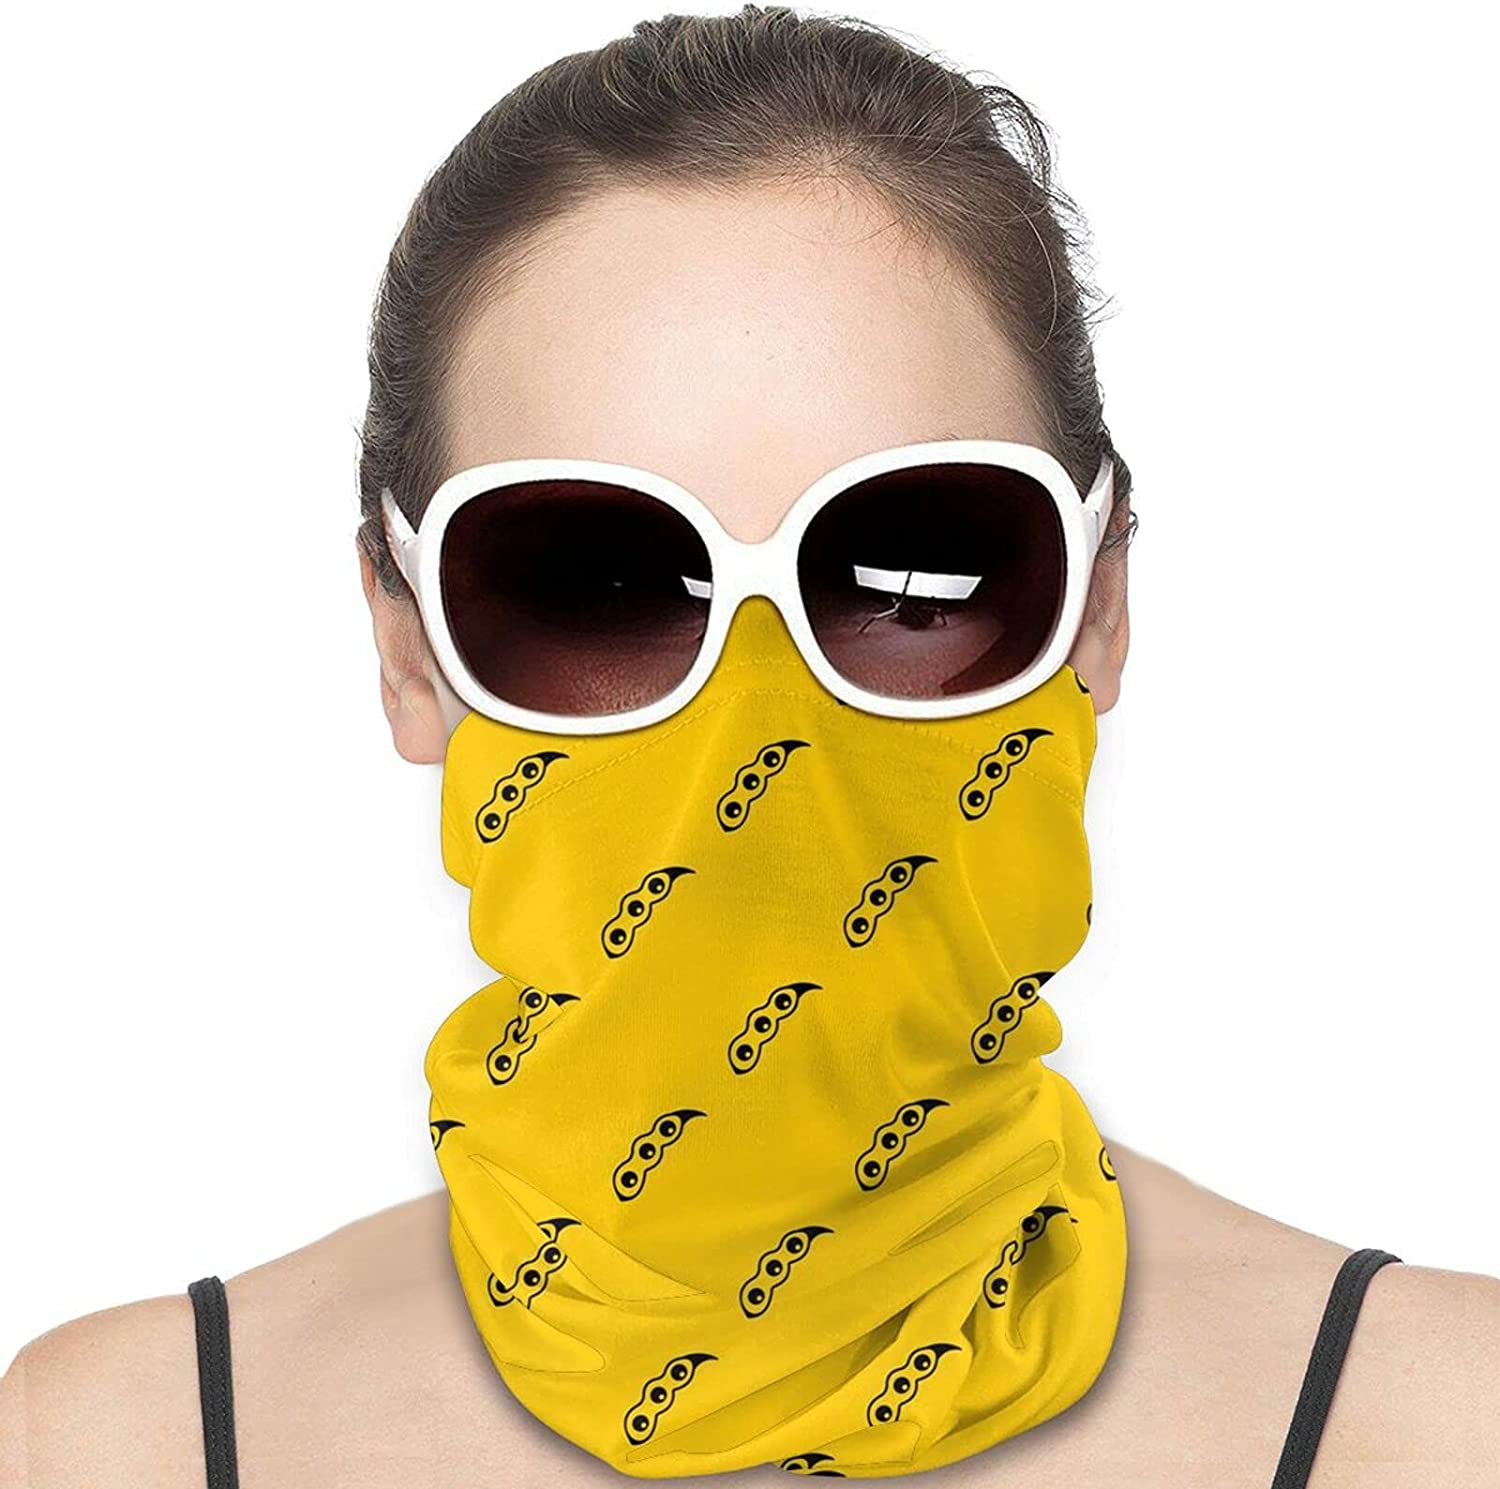 The Matured Soybean Pattern Seamless Round Neck Gaiter Bandnas Face Cover Uv Protection Prevent bask in Ice Scarf Headbands Perfect for Motorcycle Cycling Running Festival Raves Outdoors